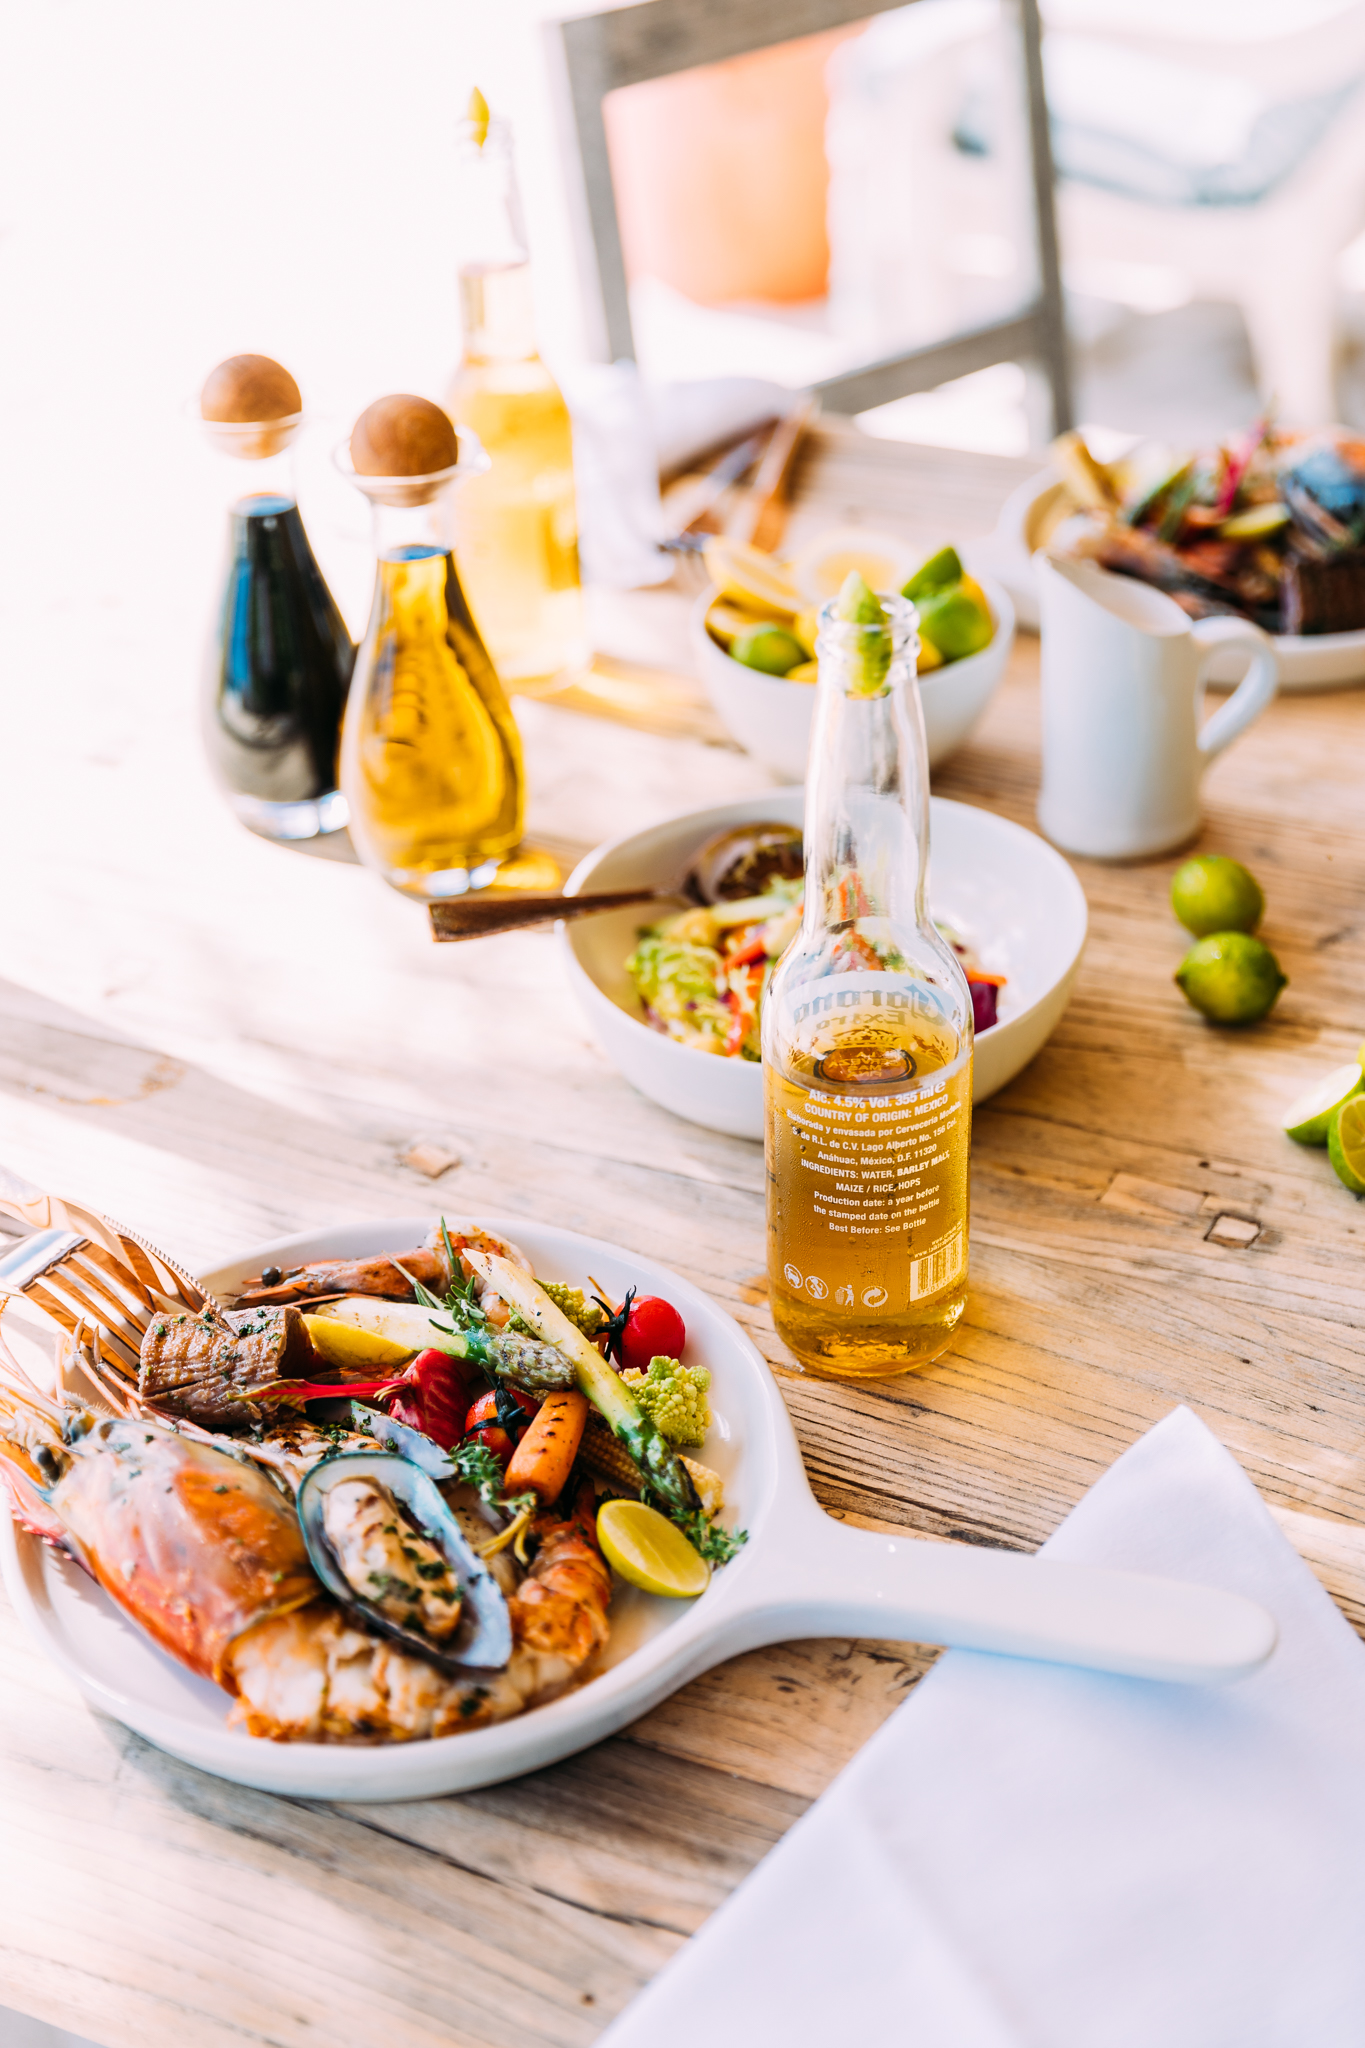 Seafood Lunch 2048px 1DX_6063.jpg